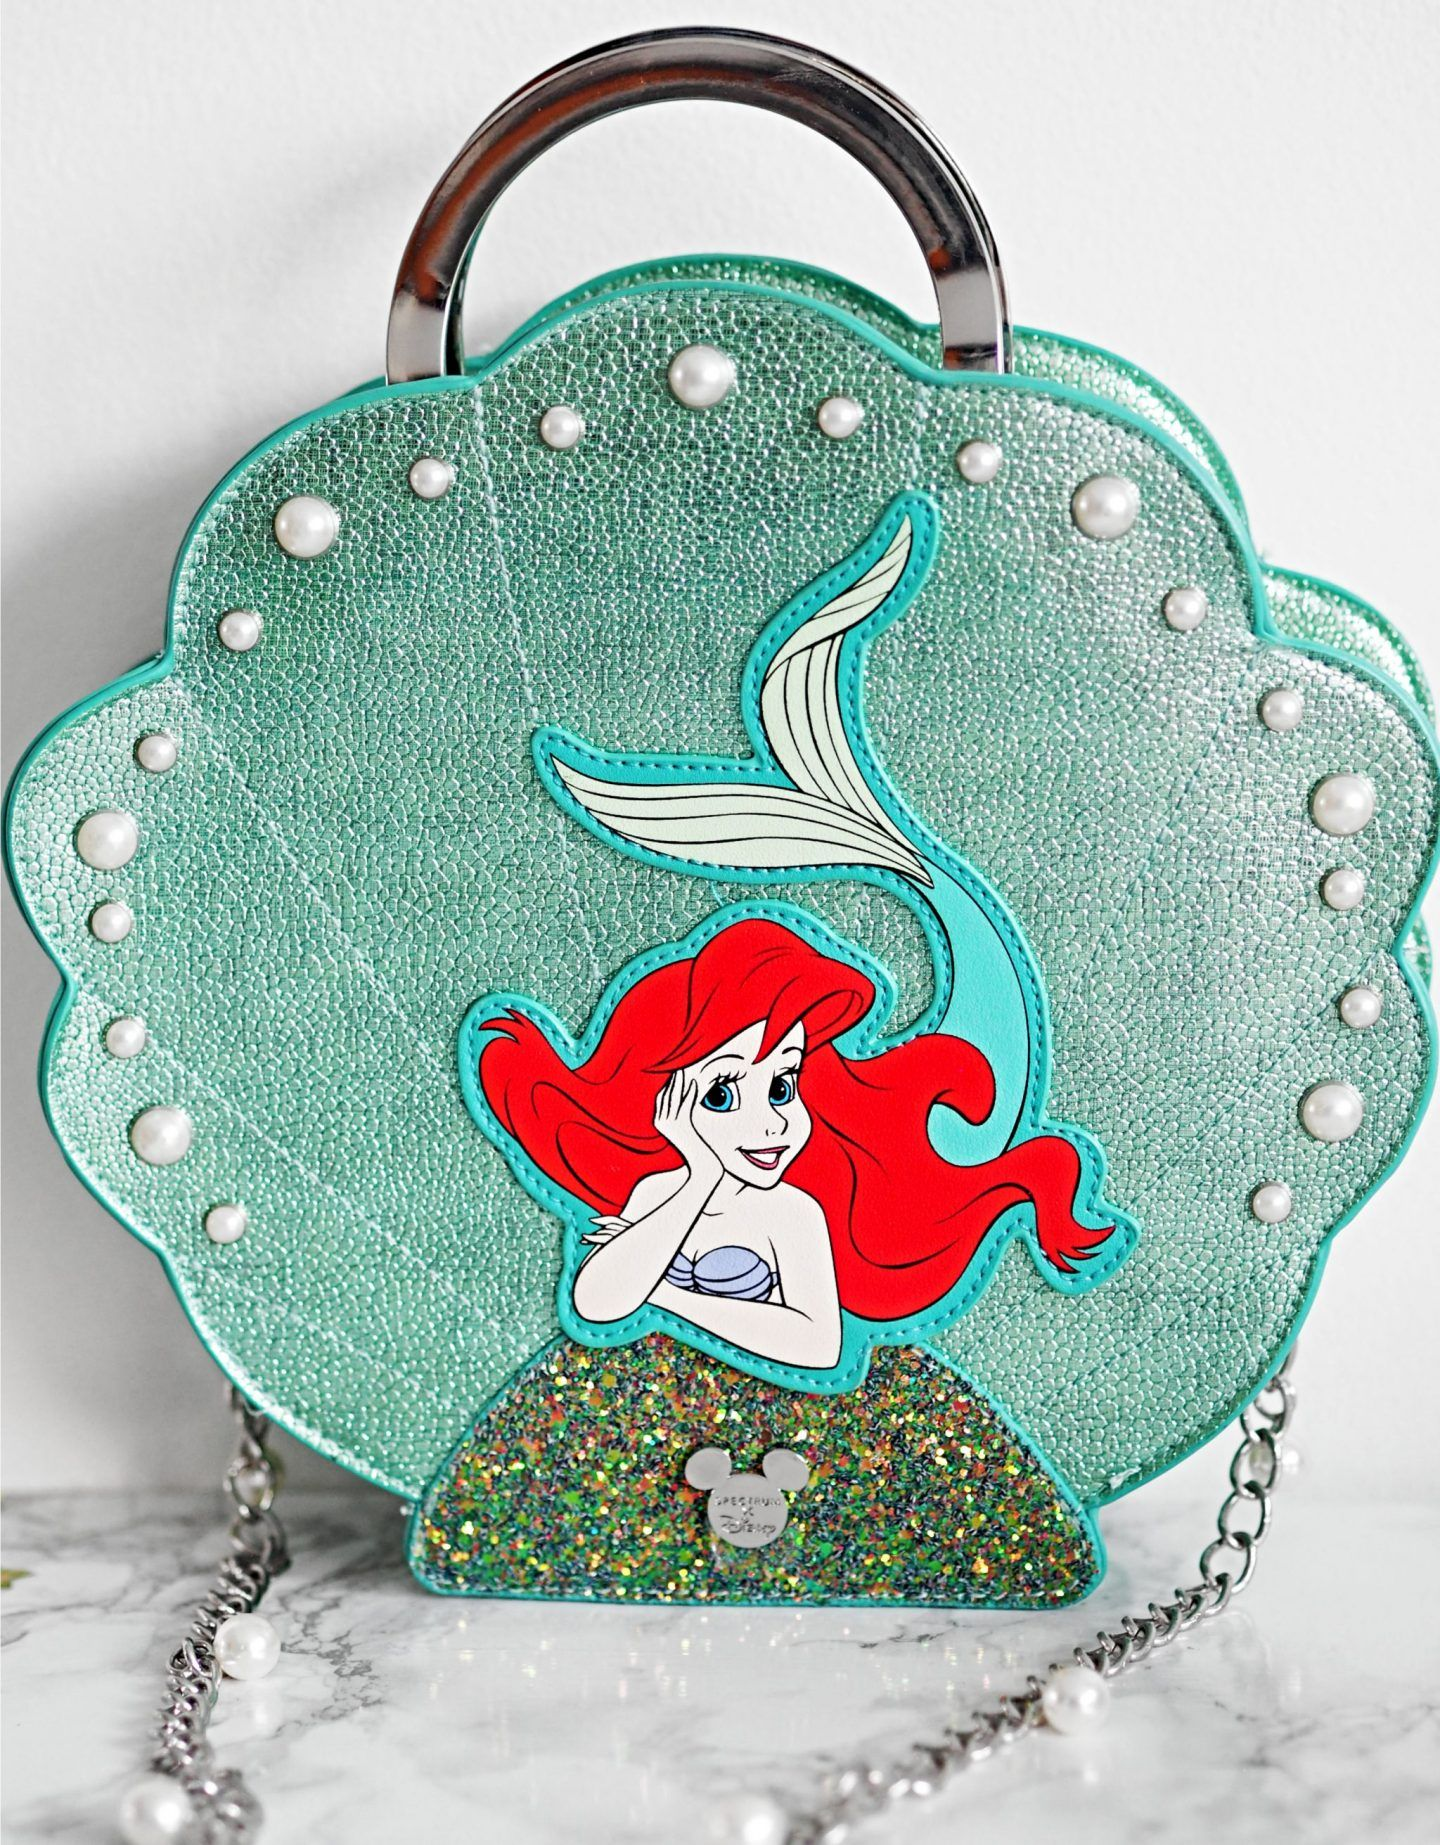 Spectrum Collections (With images) Ariel the little